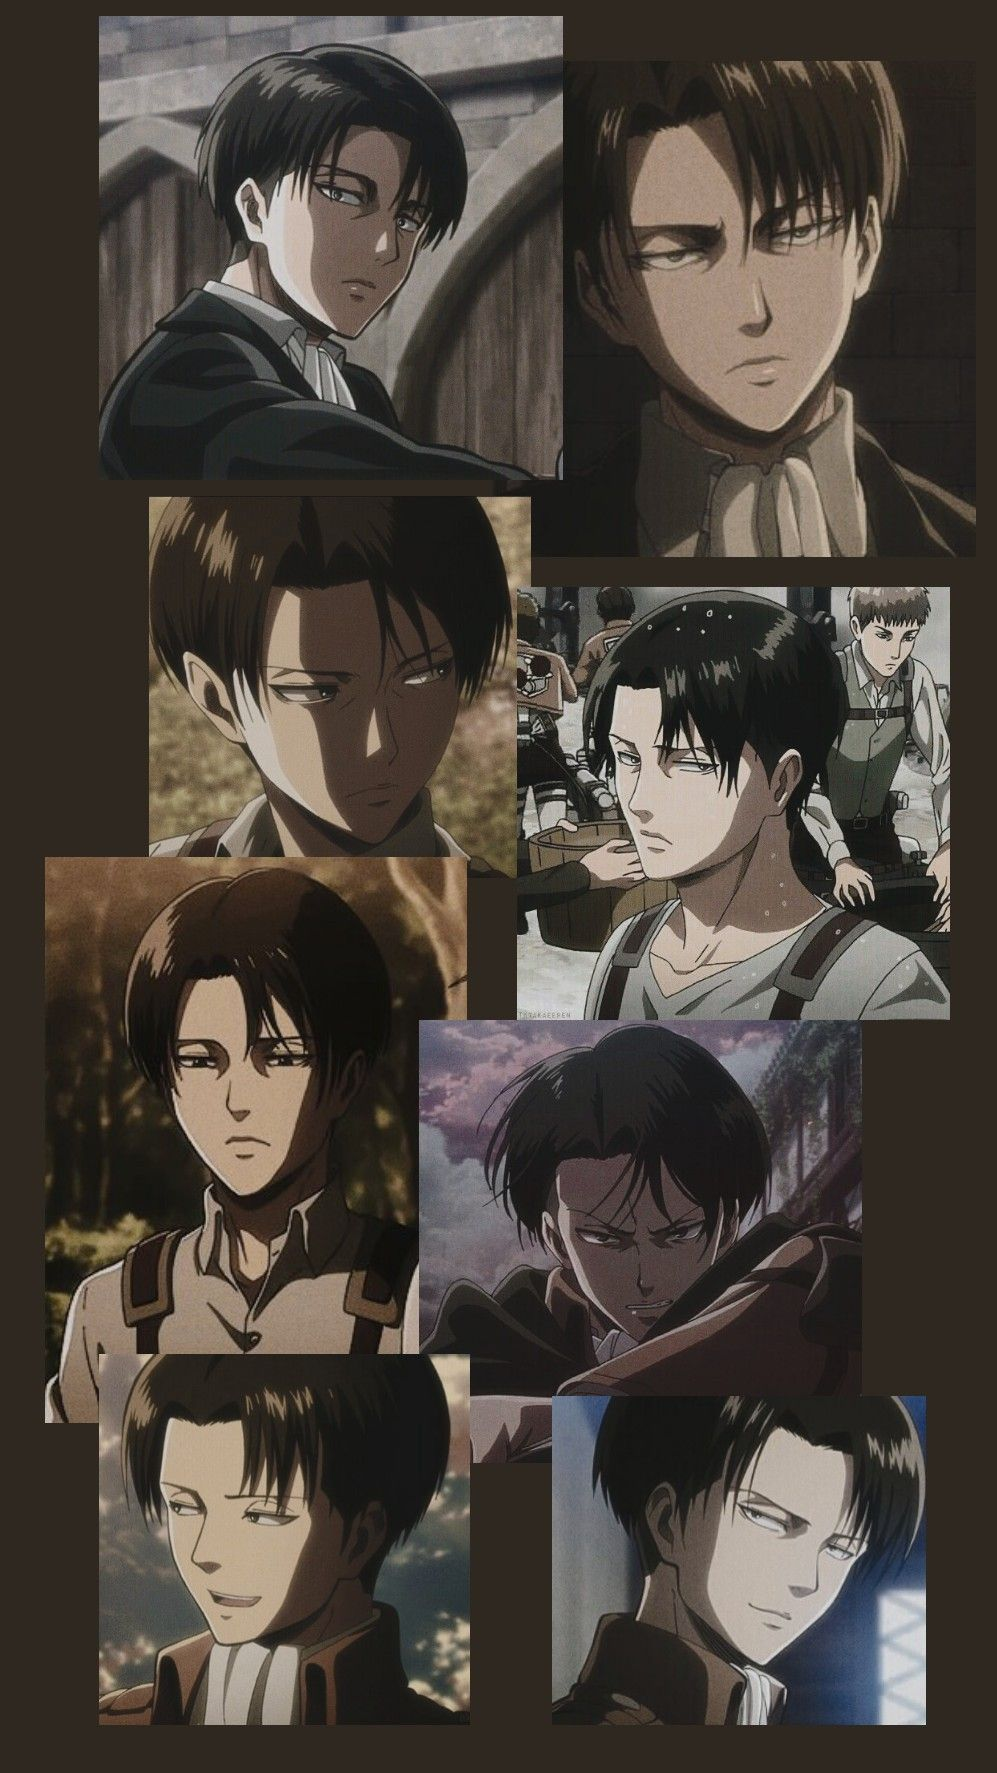 Levi Ackerman Wallpaper Anime Wallpaper Live Aesthetic Anime Anime Wallpaper